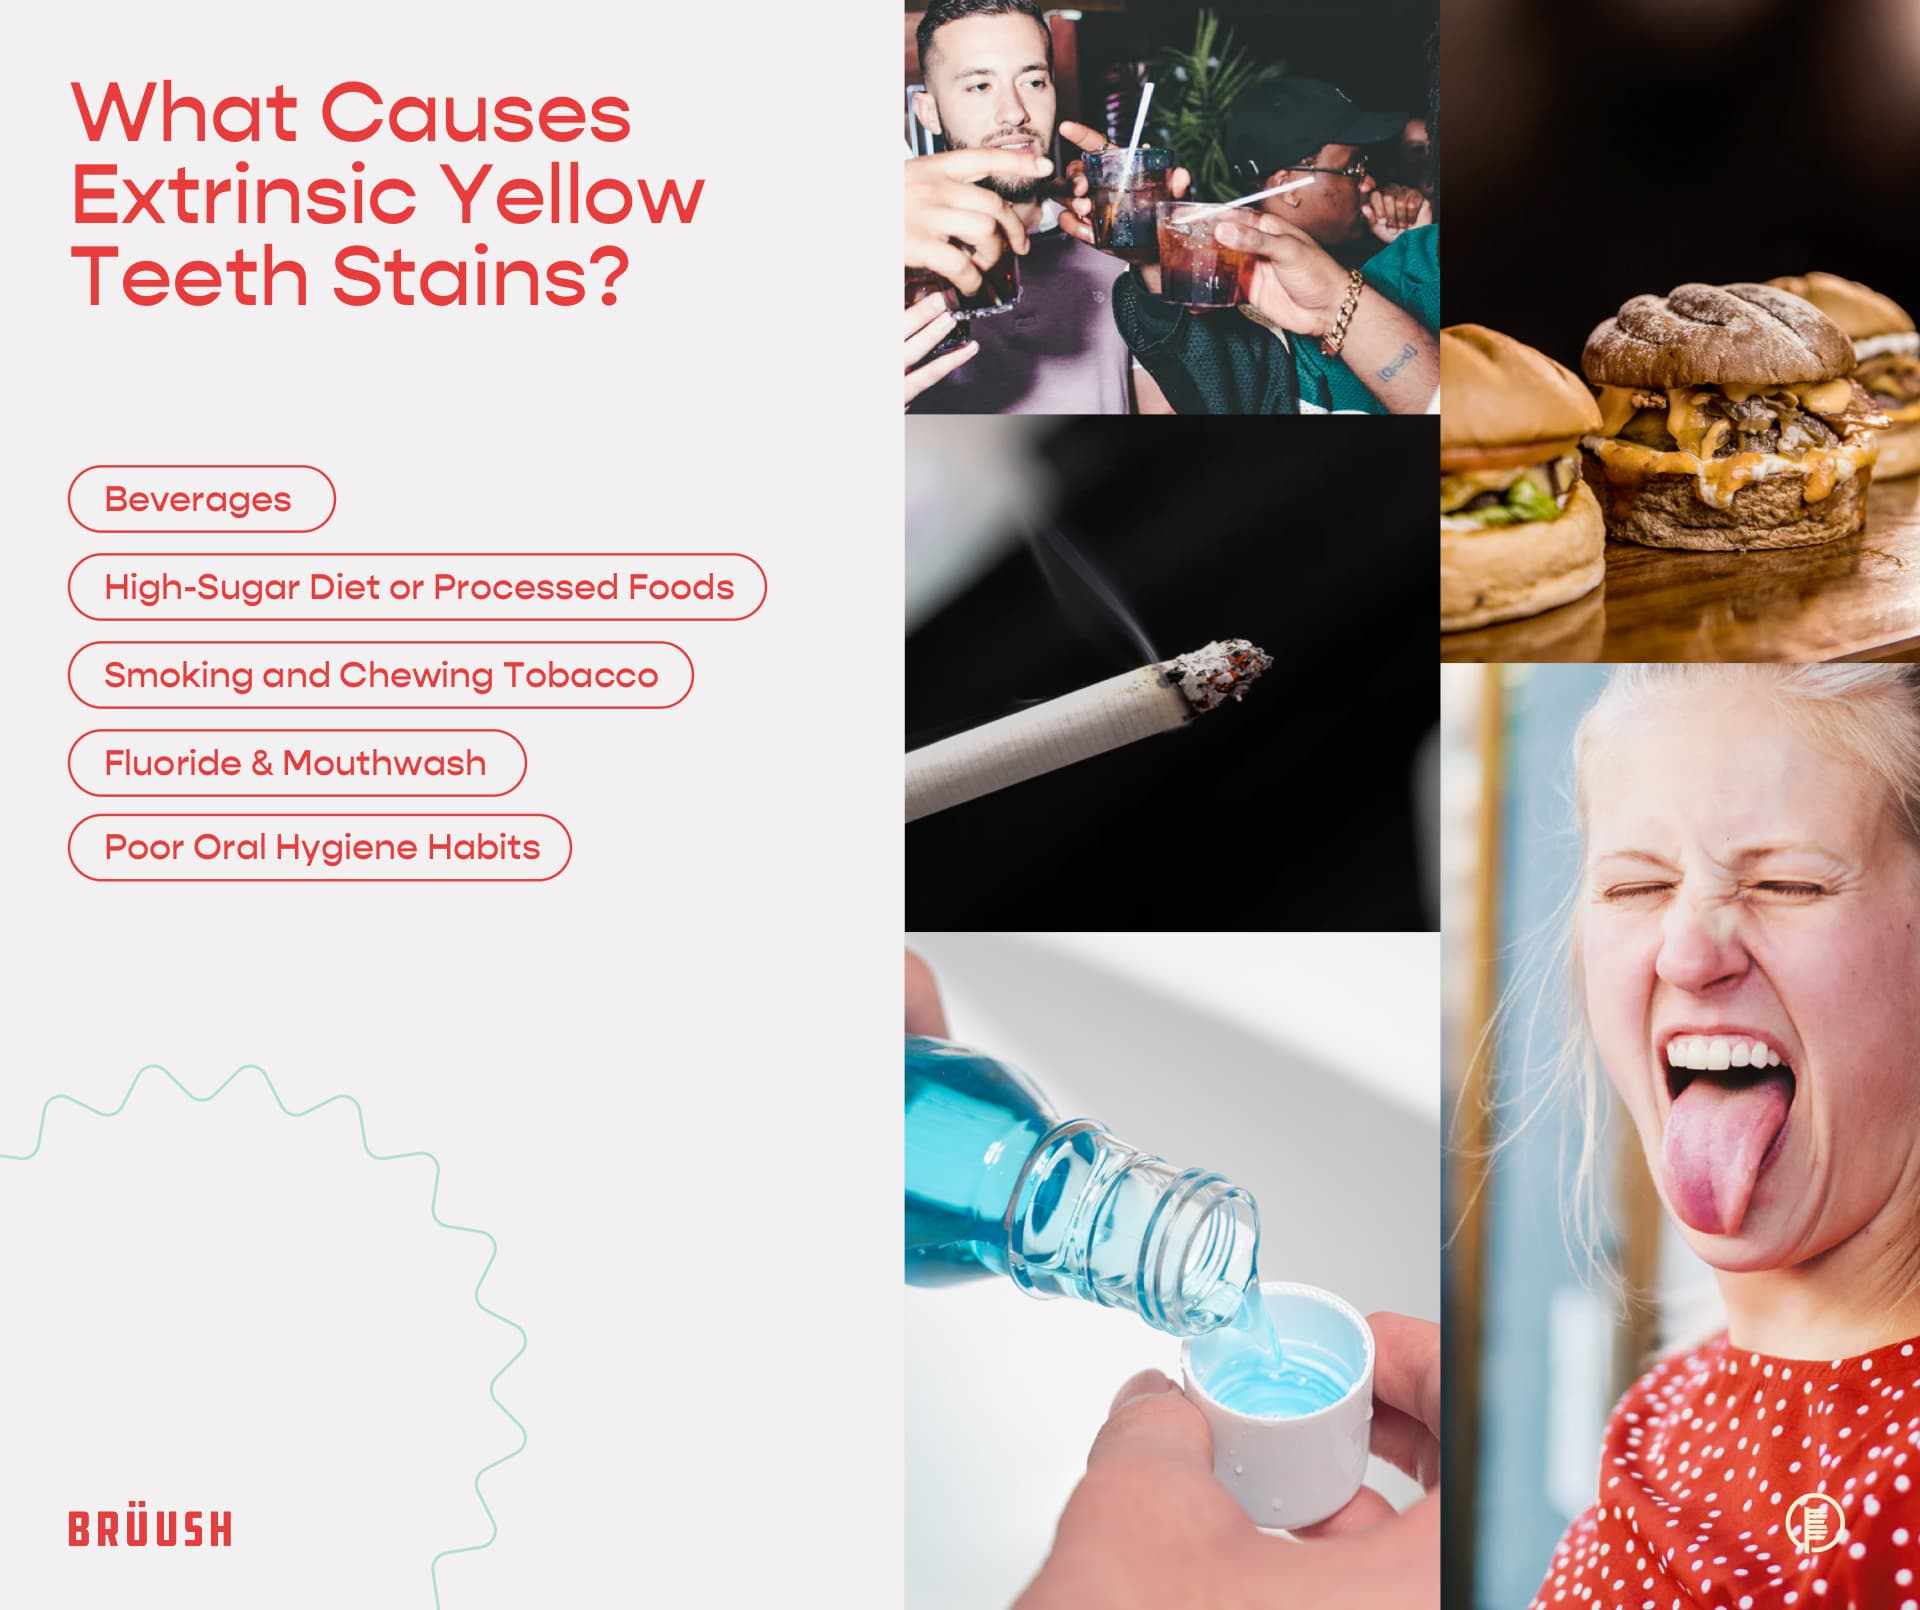 list of the reasons that cause yellow teeth stains